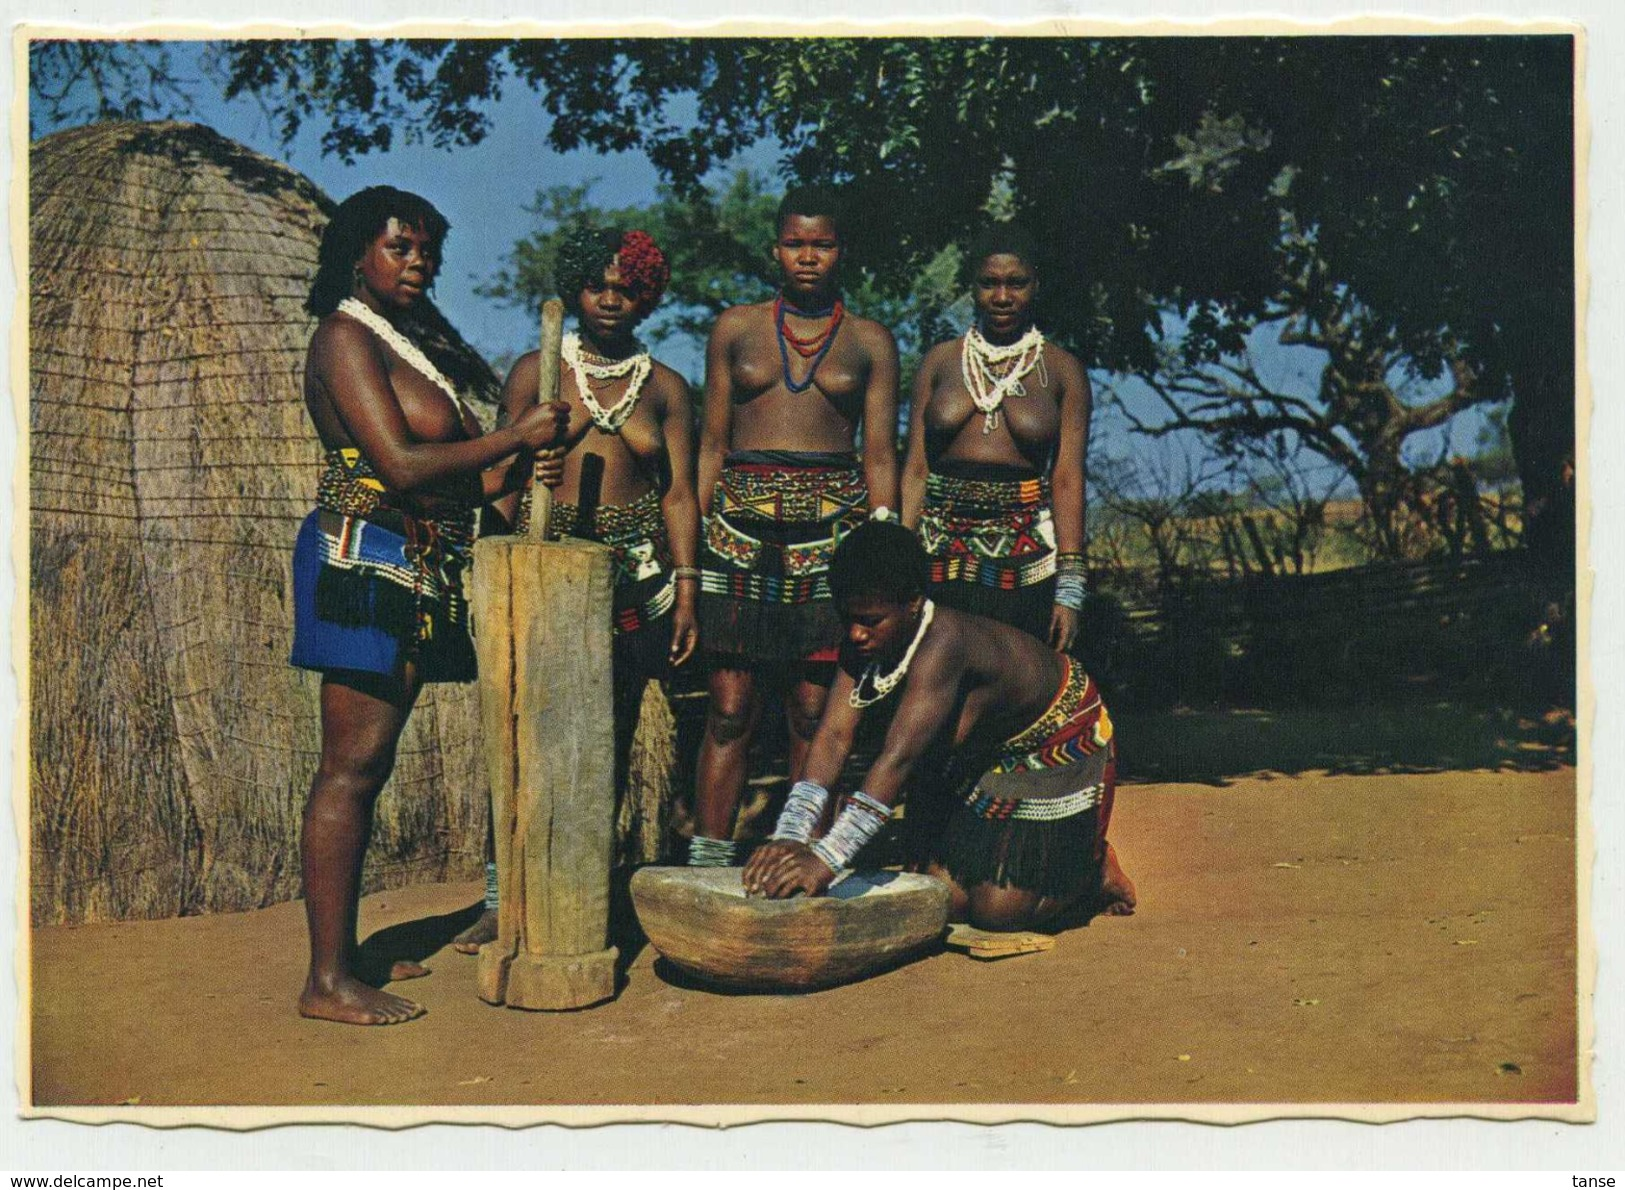 South Africa (Sud Africa) - Natal - African Girls Stamping Maize (lavorazione Mais) - South Africa